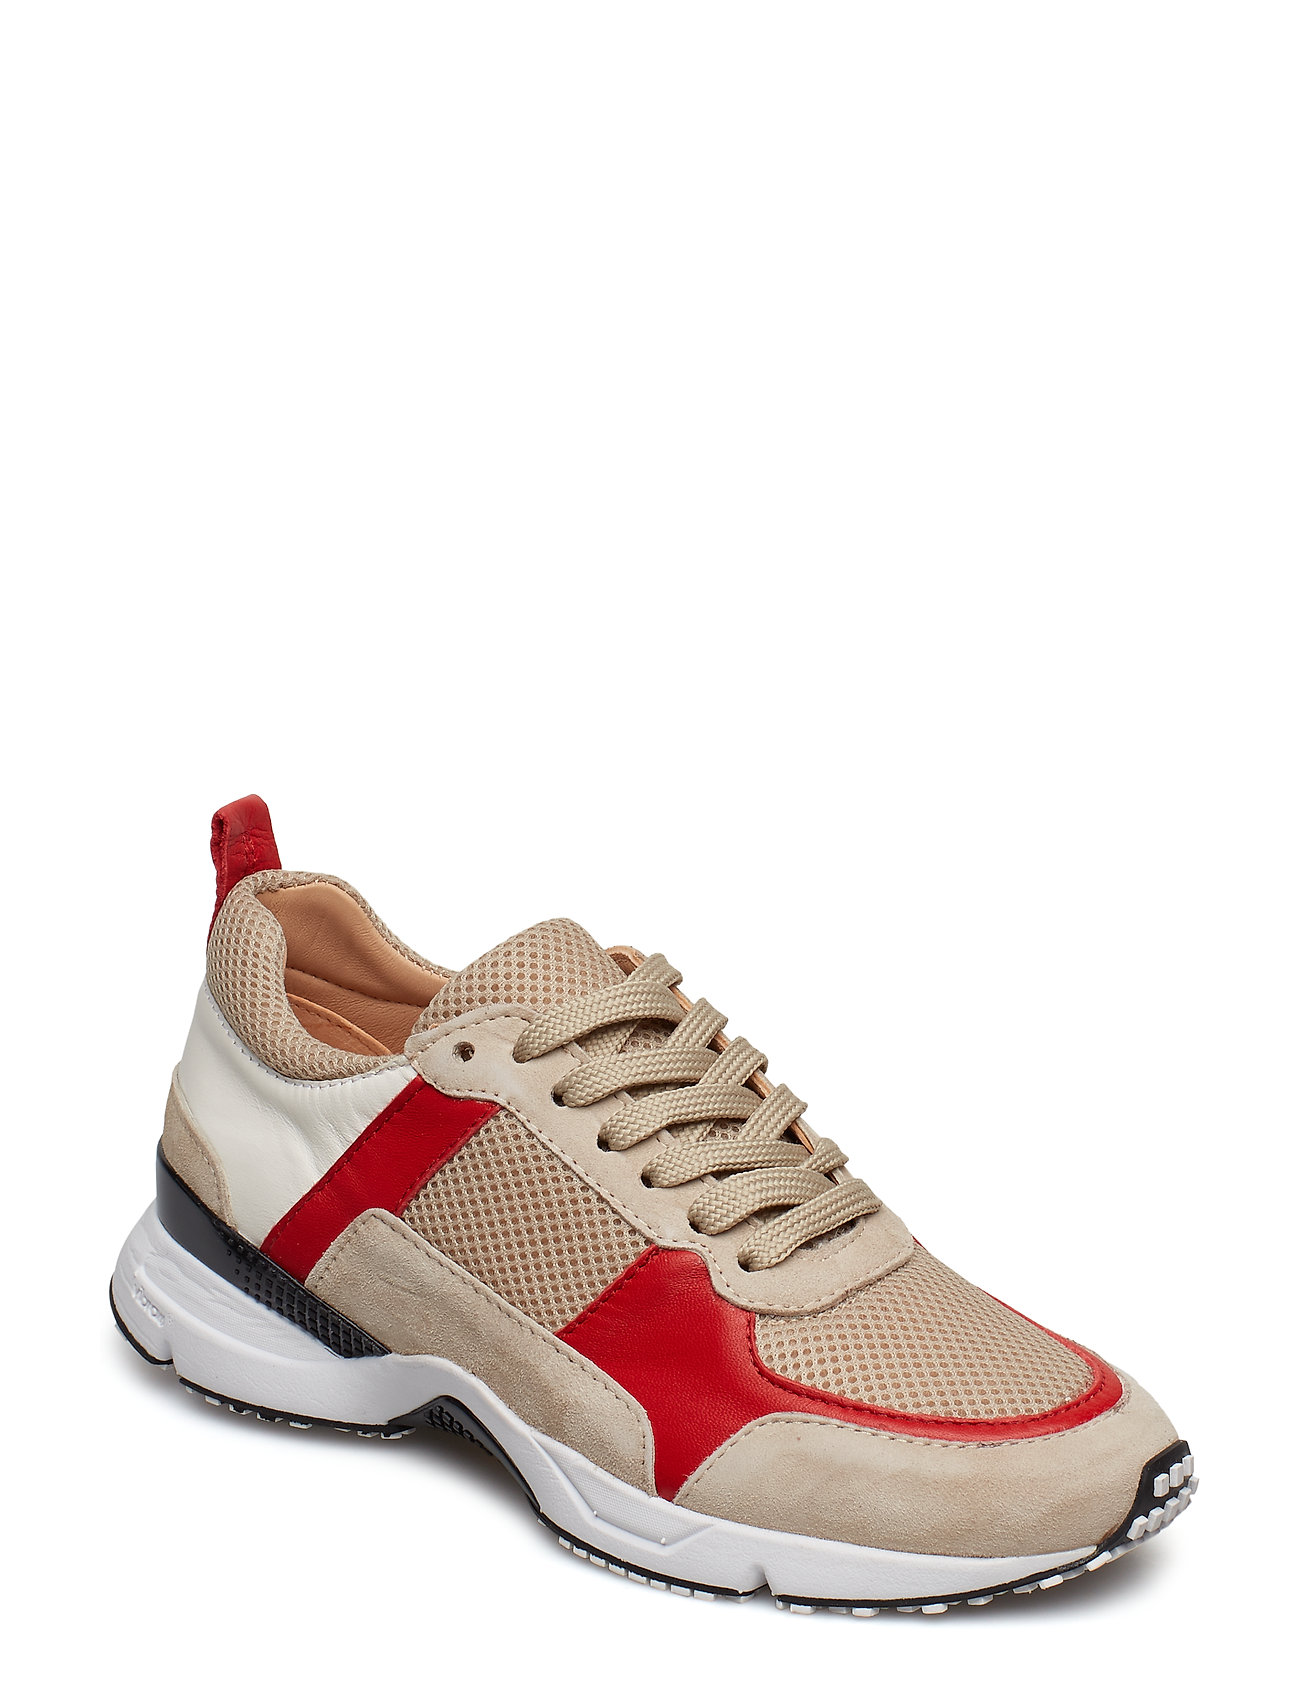 Billi Bi SHOES - BEIGE/RED COMB. 578